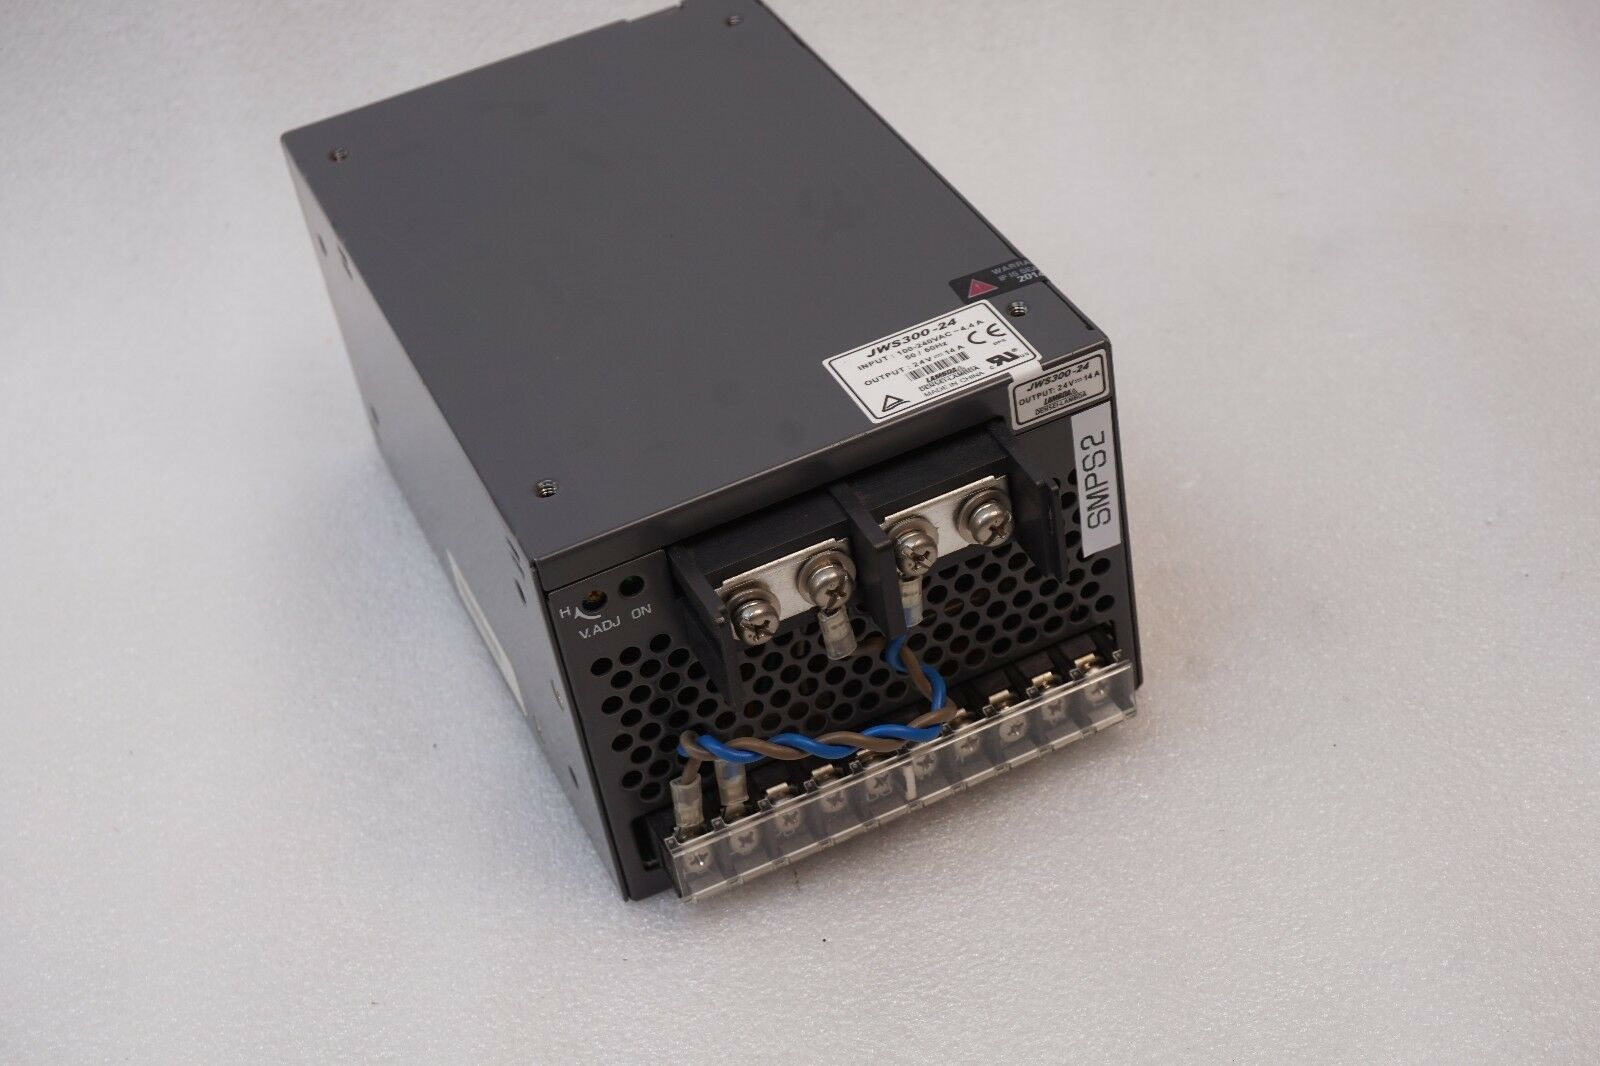 Densei Lambda Jws300 24 Power Supply Tested Working Free Ship Ac Dc 60w 24vdc 25a Active Tech Electronics 1 Of 1only Available